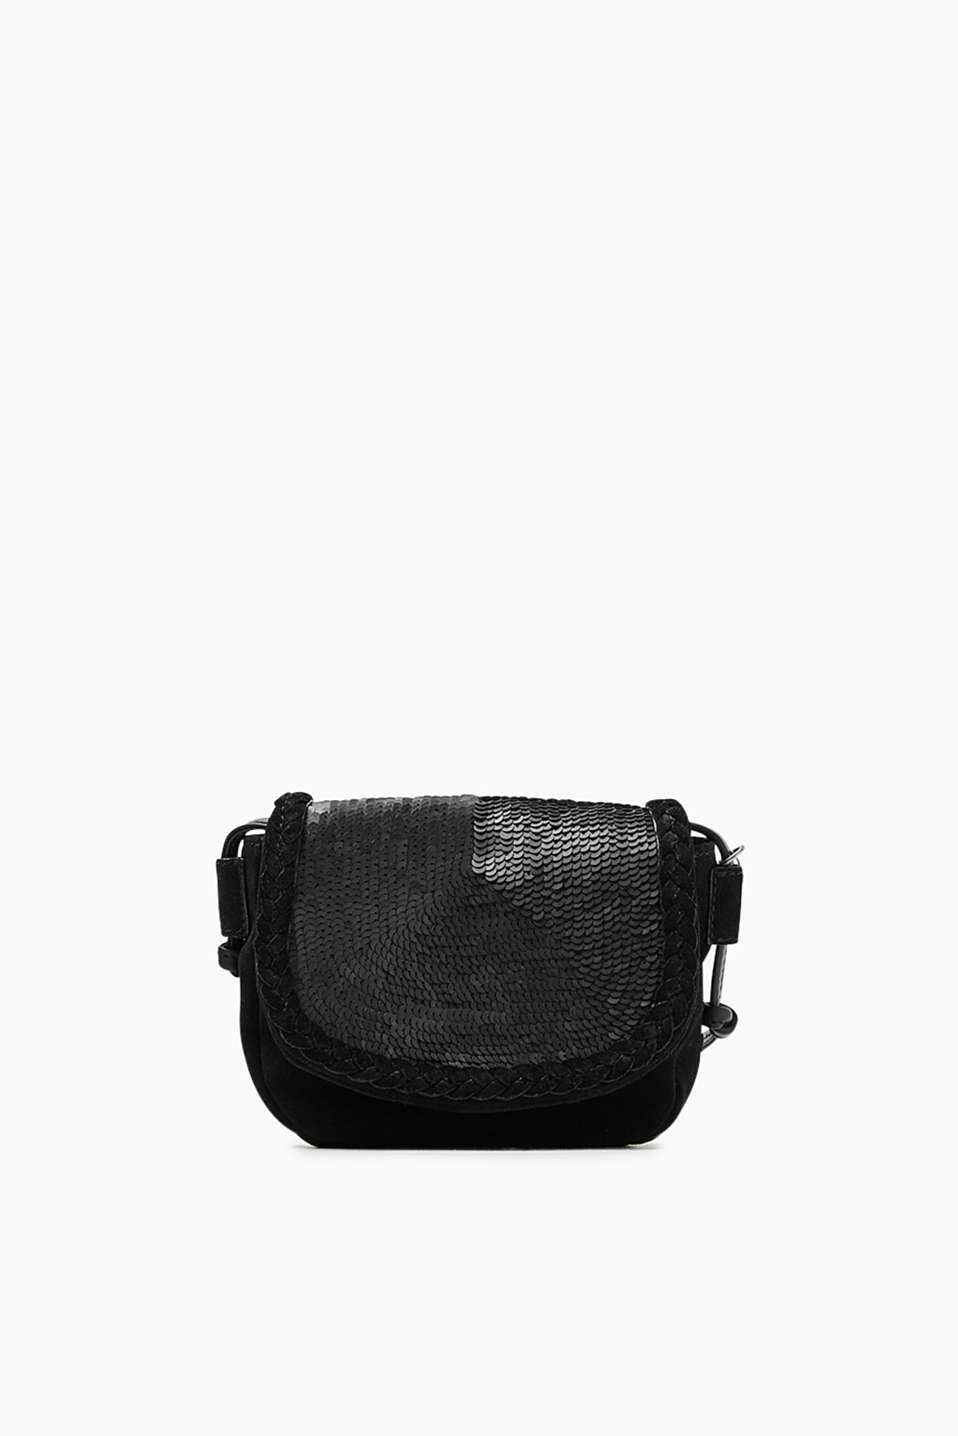 Shoulder bag trimmed with tonal sequins made of genuine cowhide leather